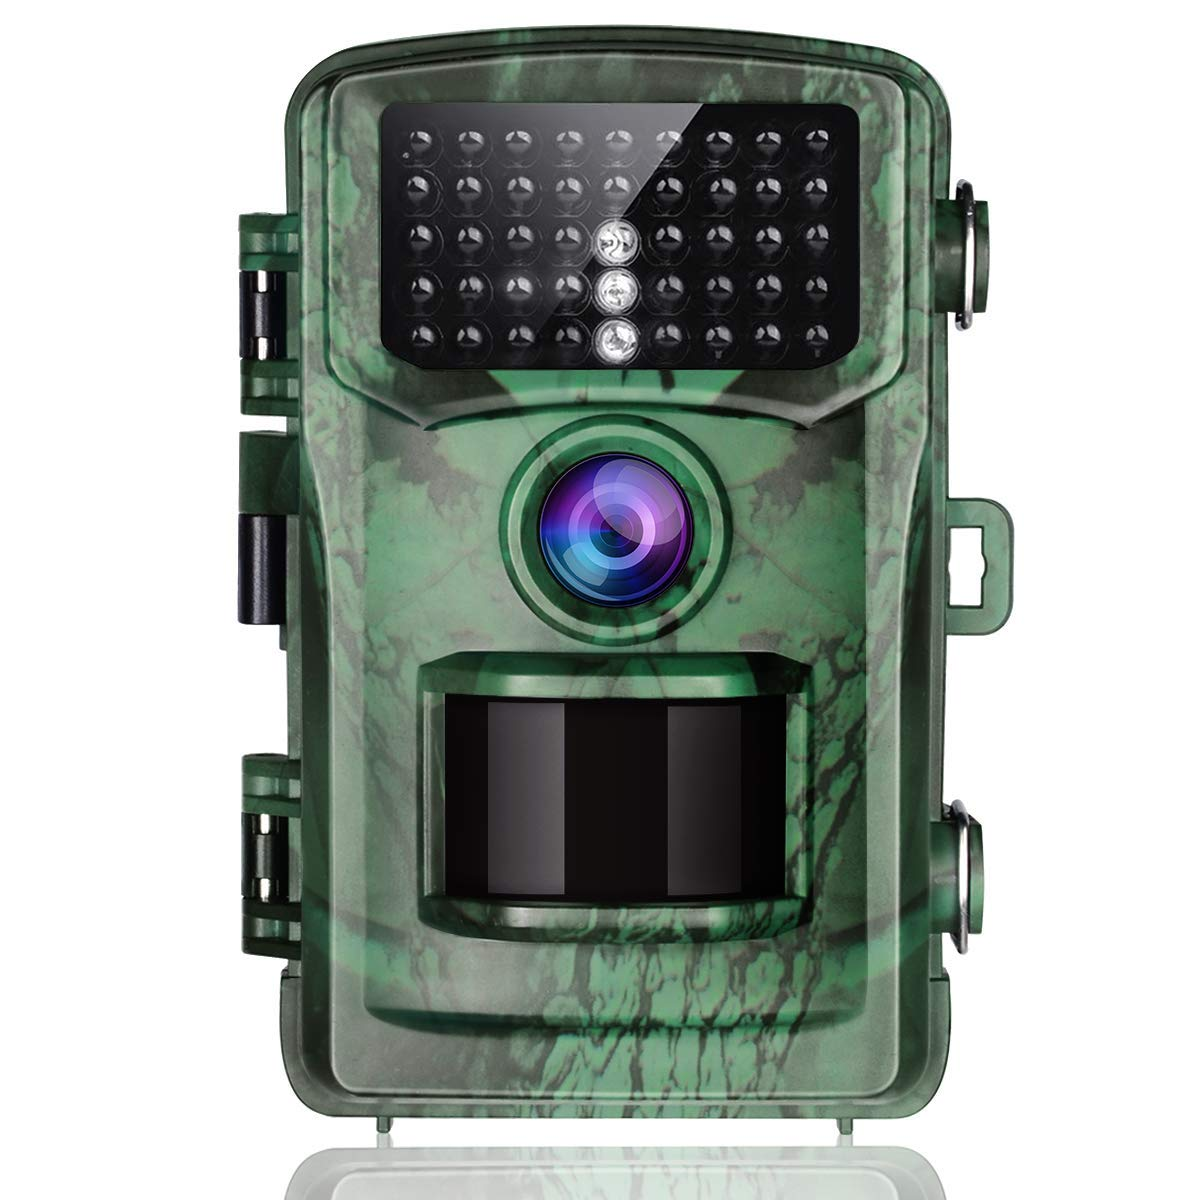 TOGUARD Trail Camera 14MP 1080P Game Hunting Cameras with Night Vision Waterproof 2.4'' LCD IR LEDs Night Vision Deer Cam Design for Wildlife Monitoring and Home Security by TOGUARD